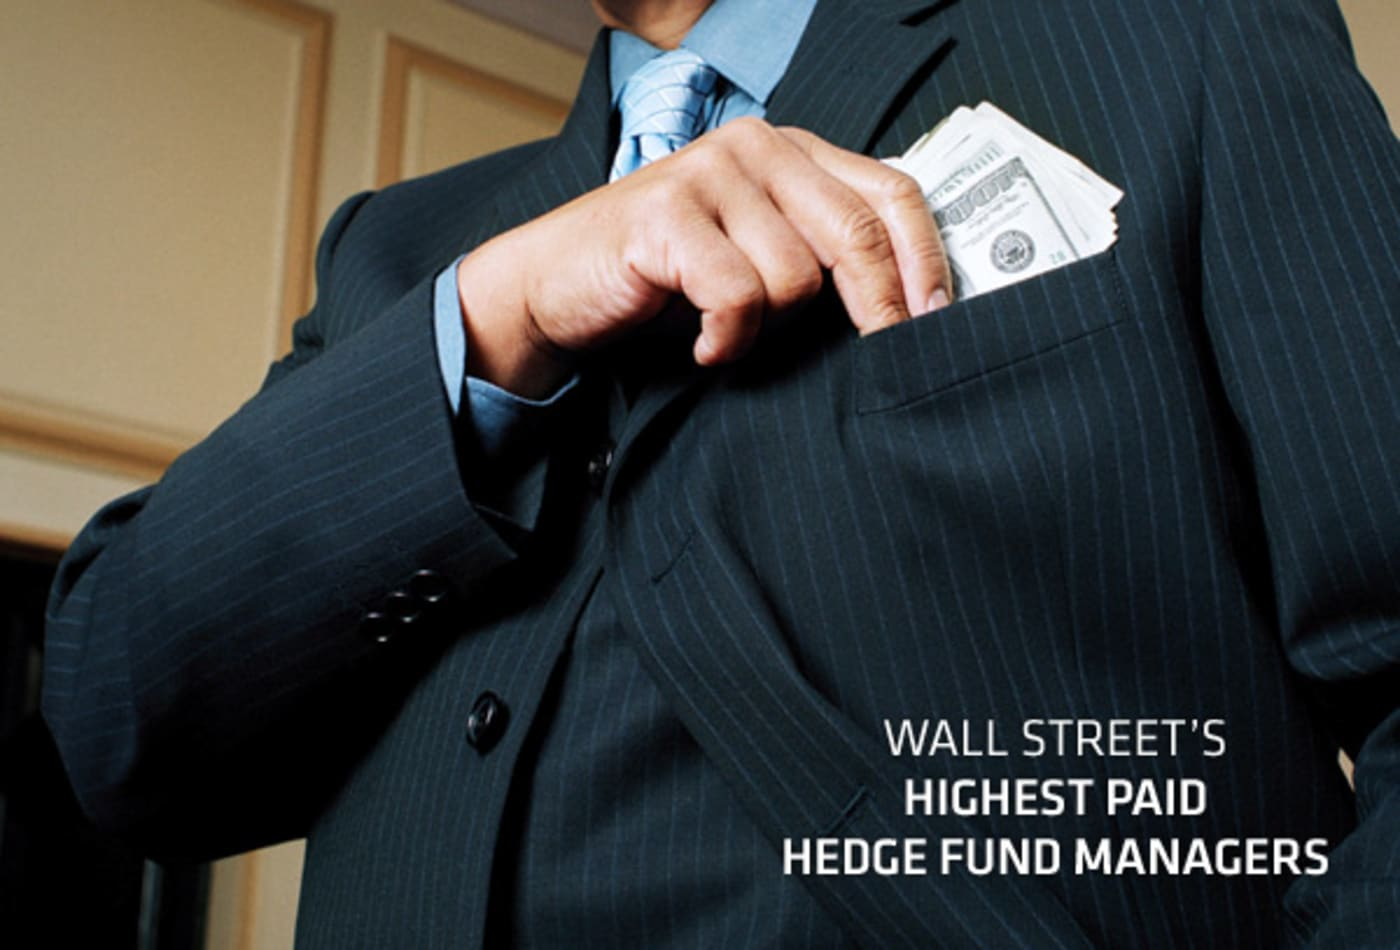 Richest-Hedgefund-Managers-cover1.jpg